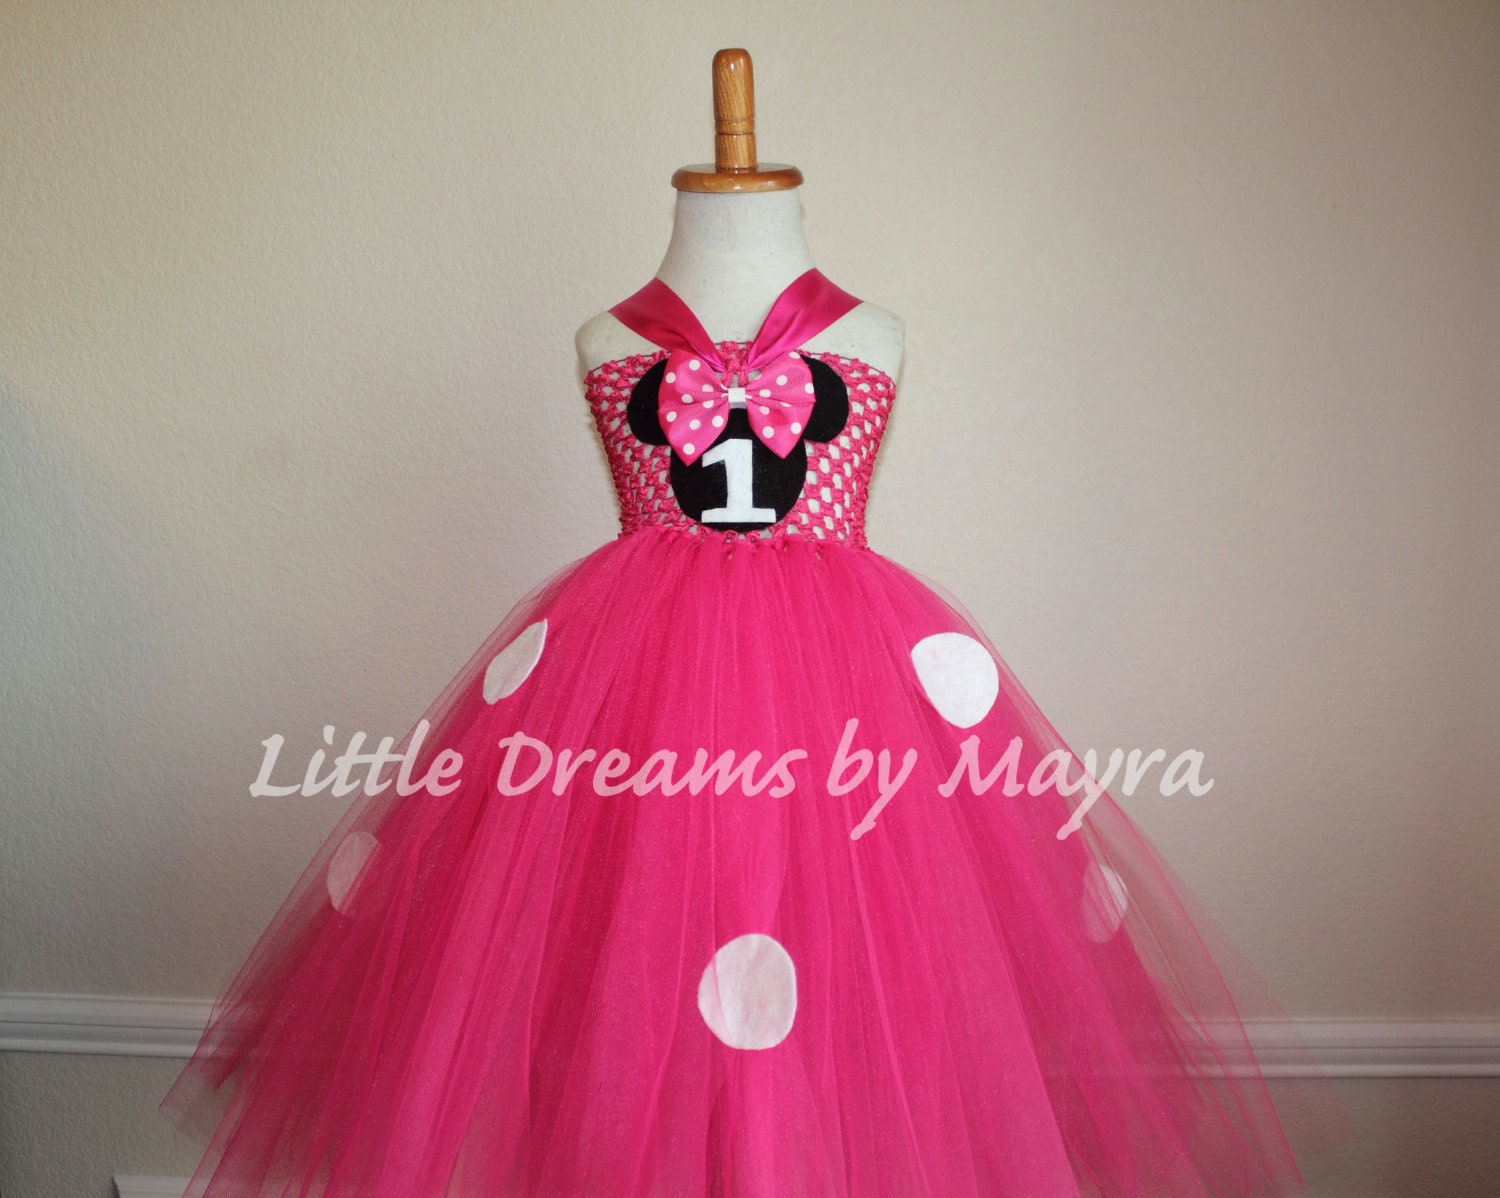 Hot pink 1st birthday minnie mouse inspired tutu dress and